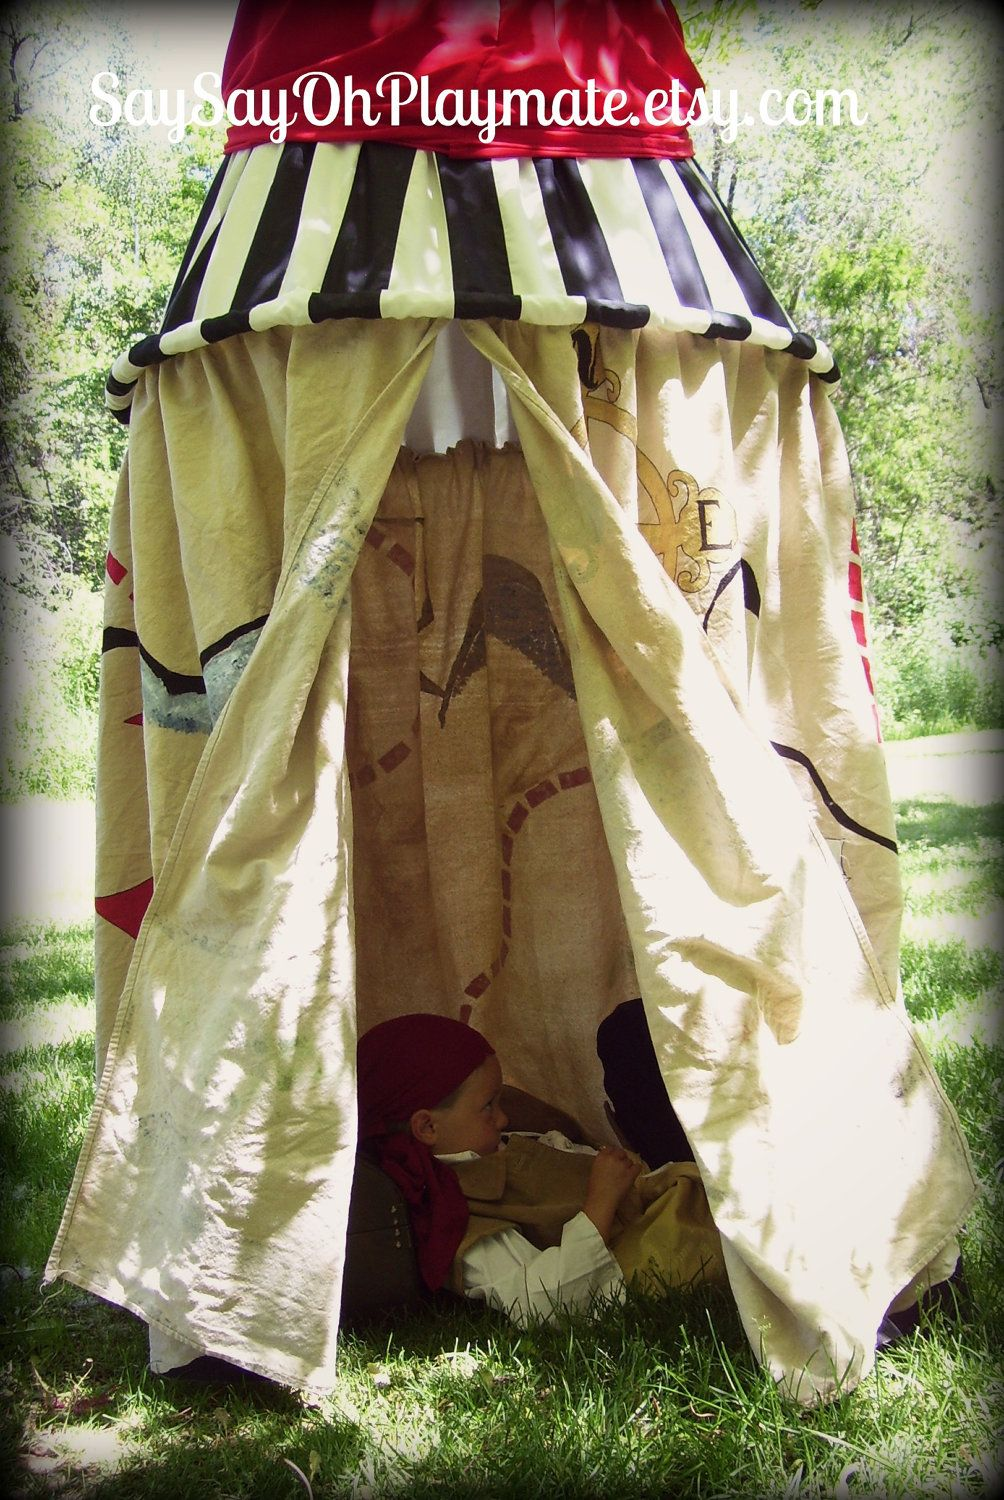 Boy Pirate Canopy Tent from by saysayohplaymateshop on Etsy. This is my cousinu0027s sight and & Boy Pirate Canopy Tent from by saysayohplaymateshop on Etsy. This ...